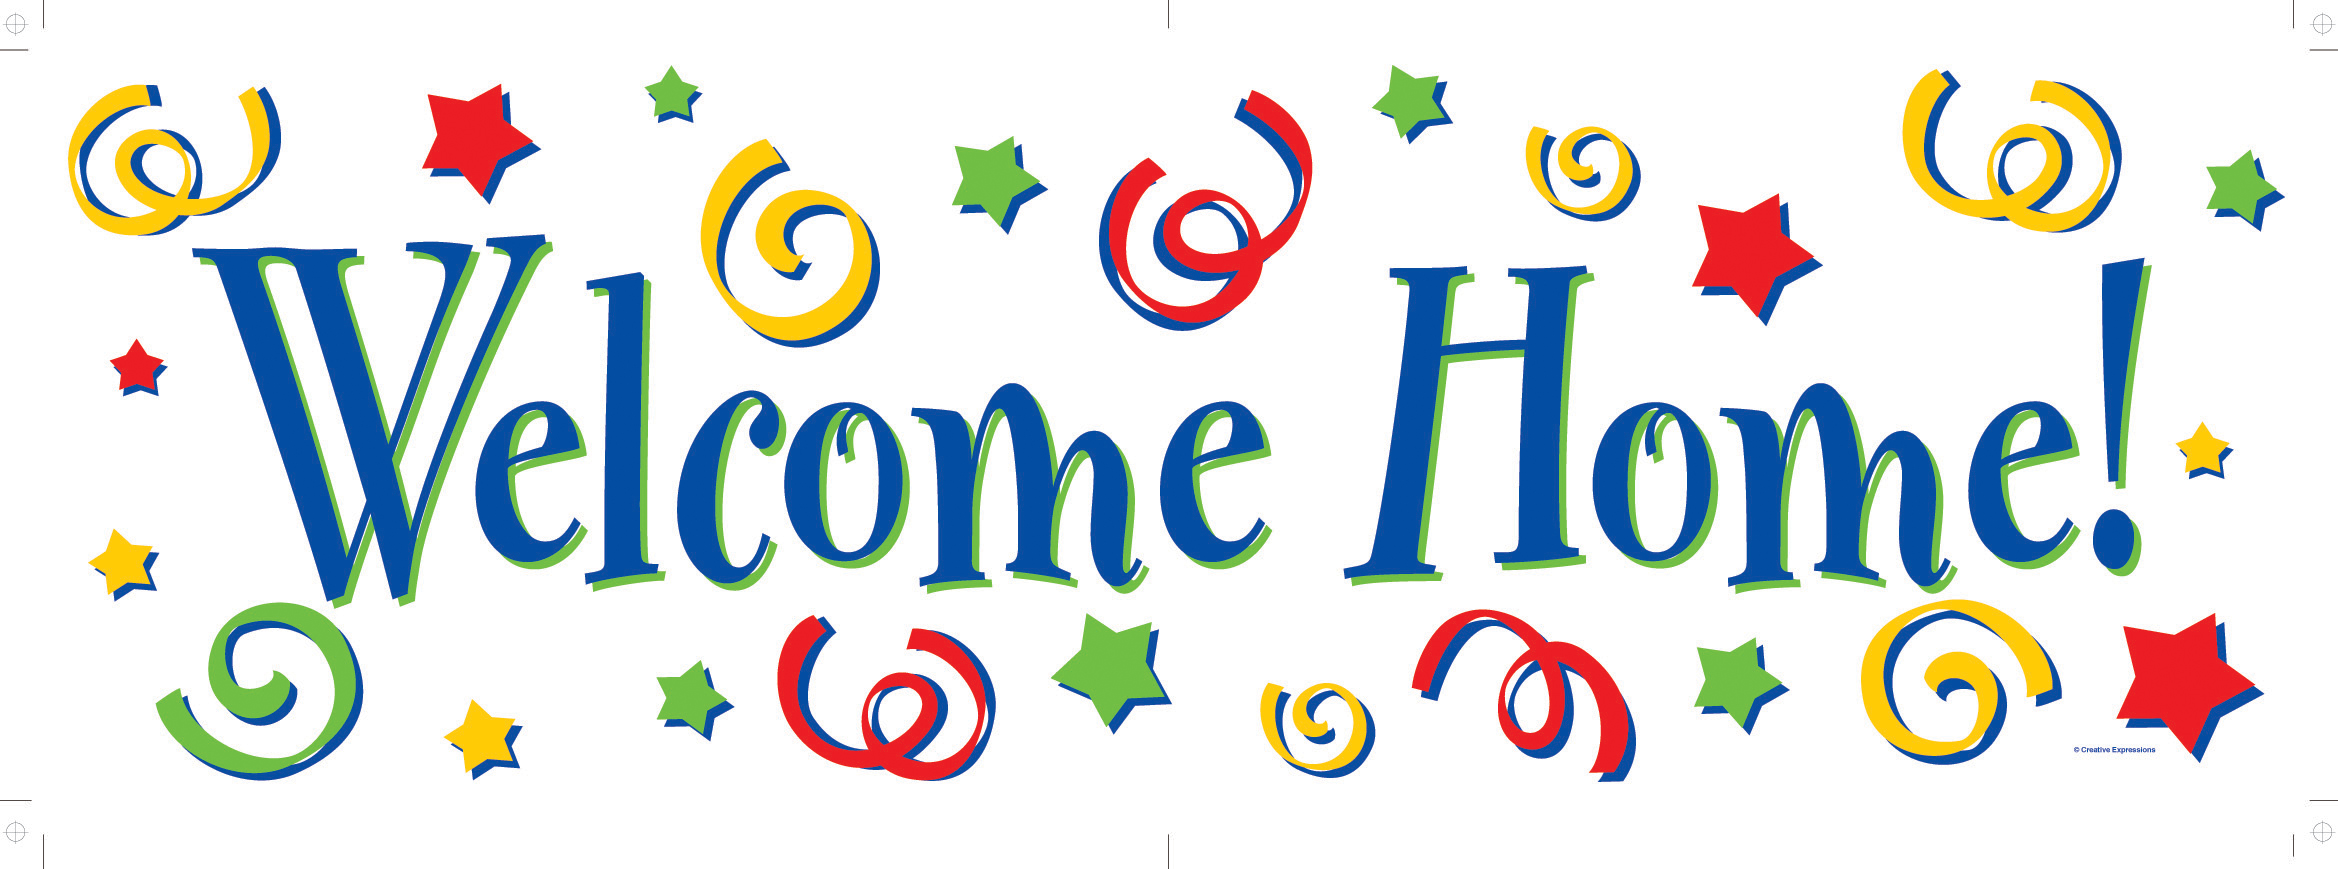 Welcome Home Clipart at GetDrawings.com.